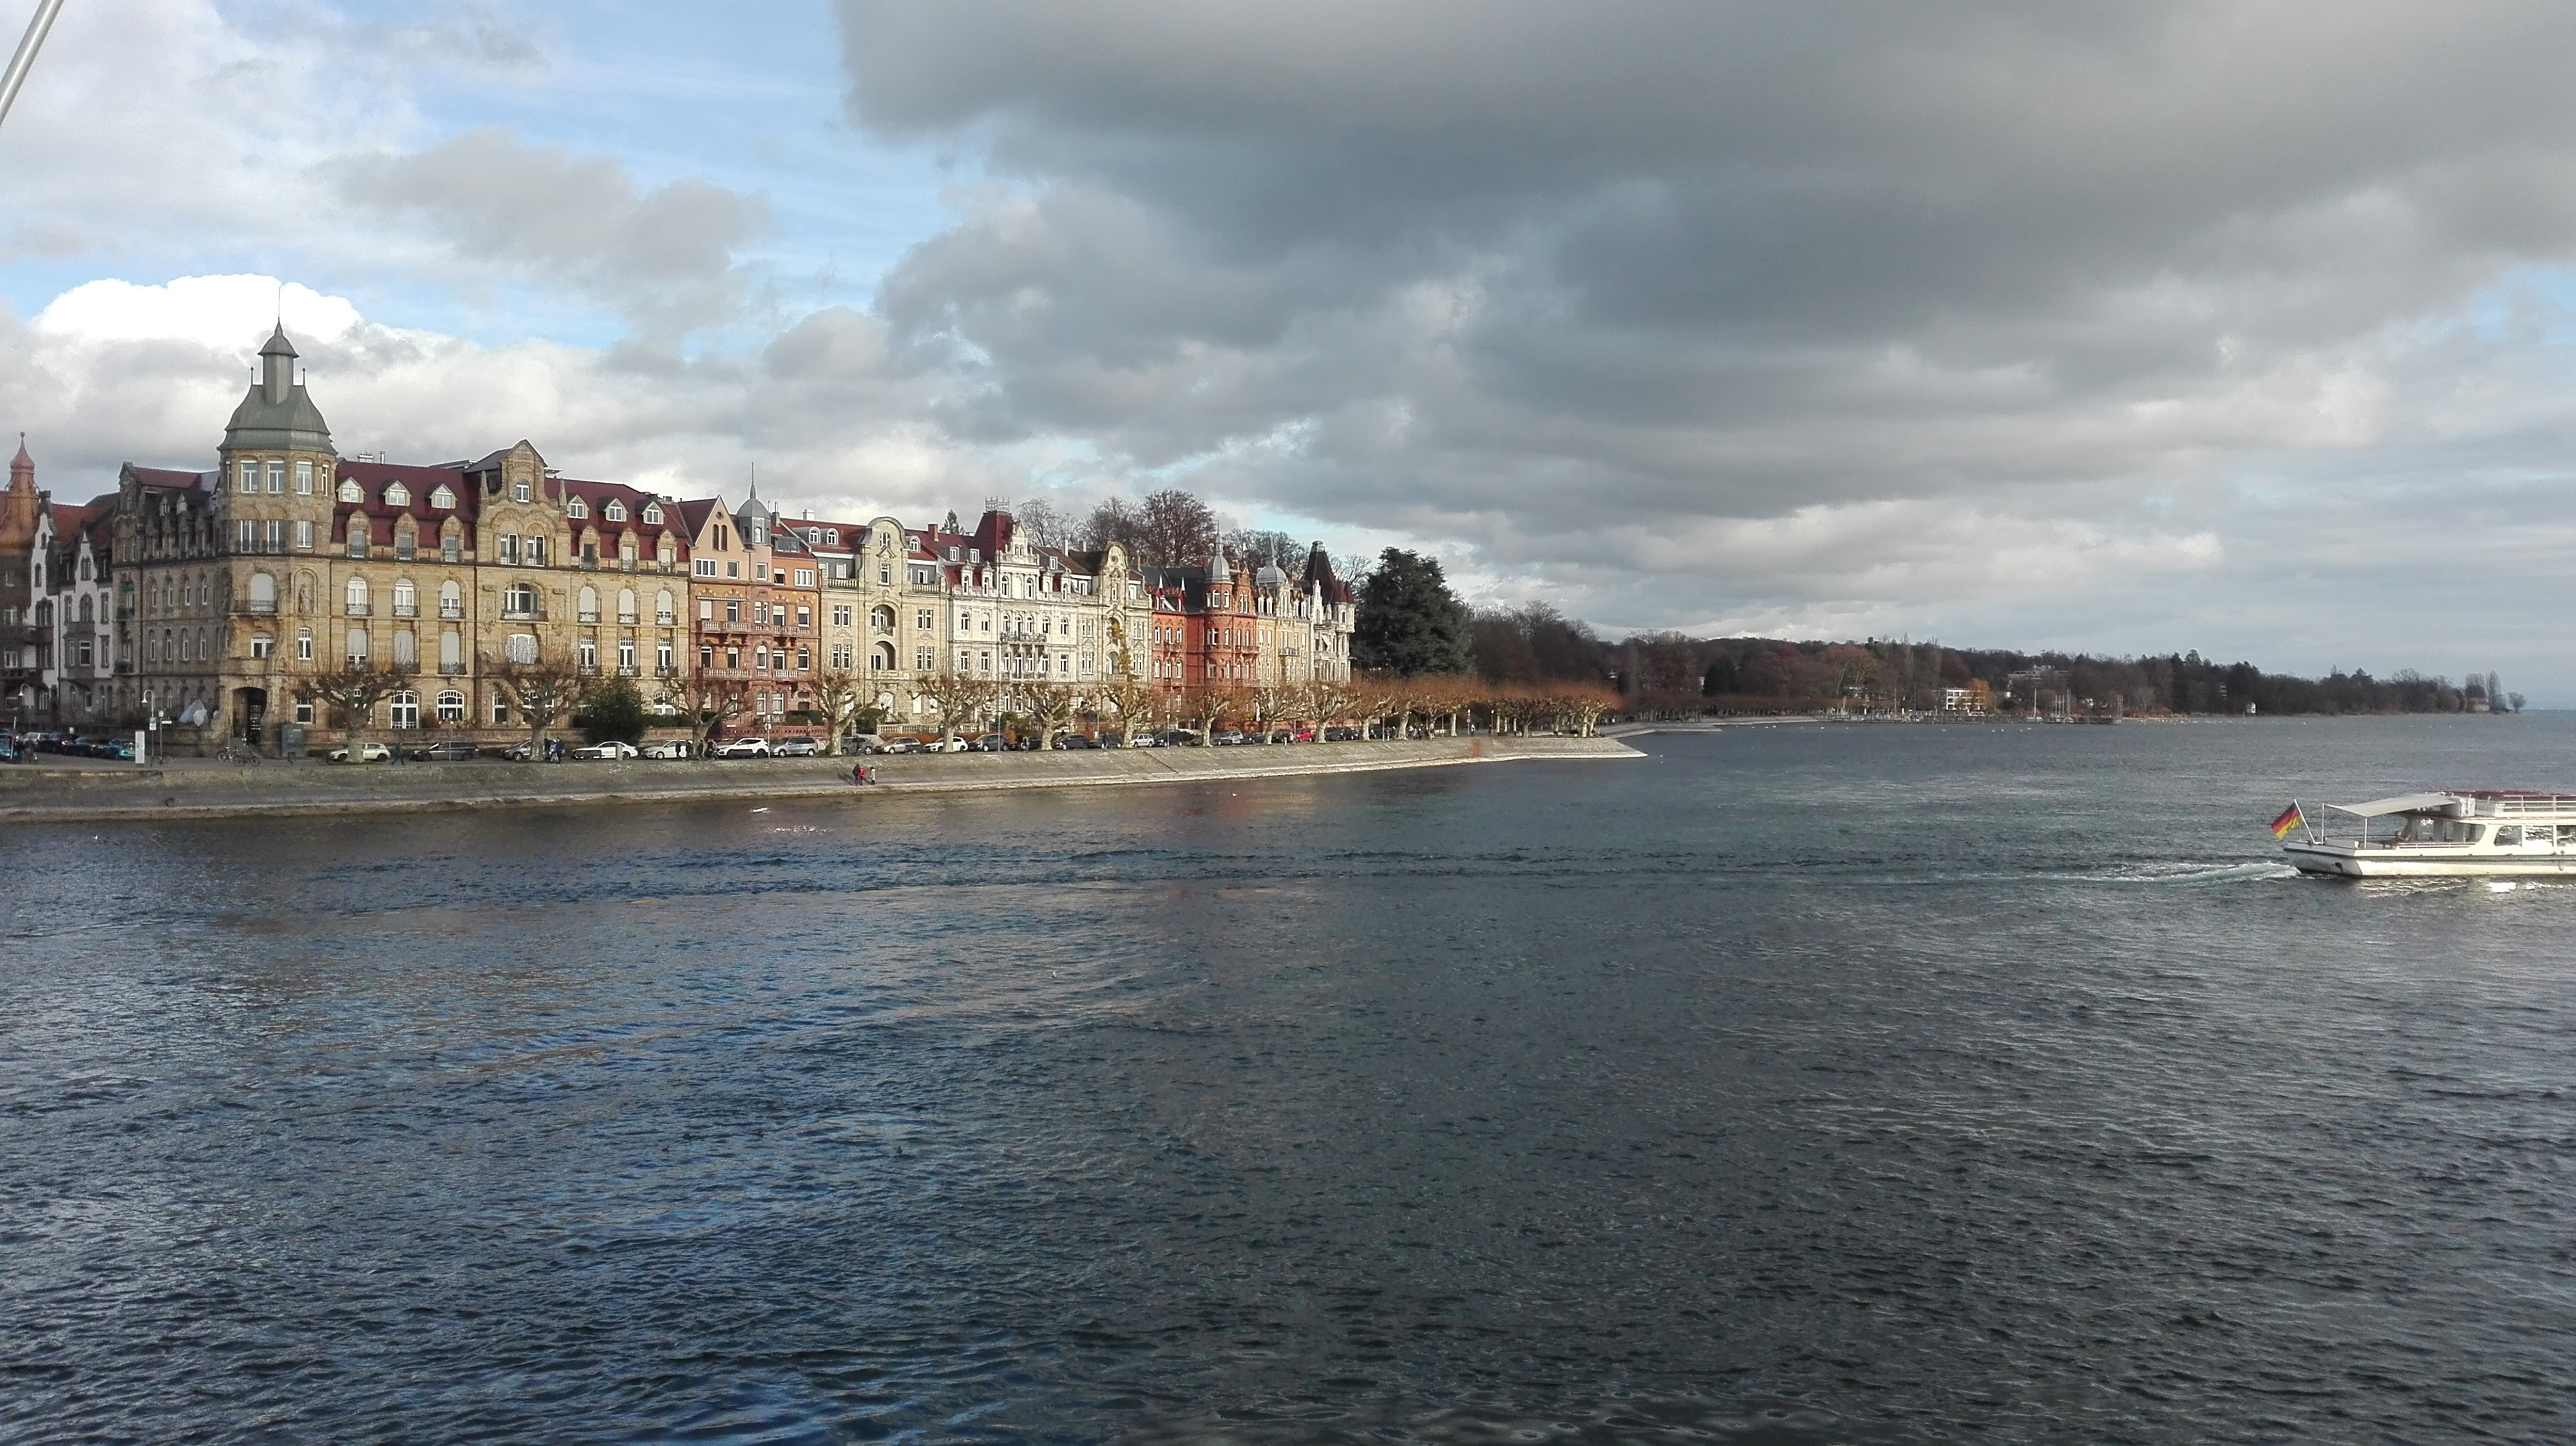 Lake Constance in Germany. Konstanz is a city on Lake